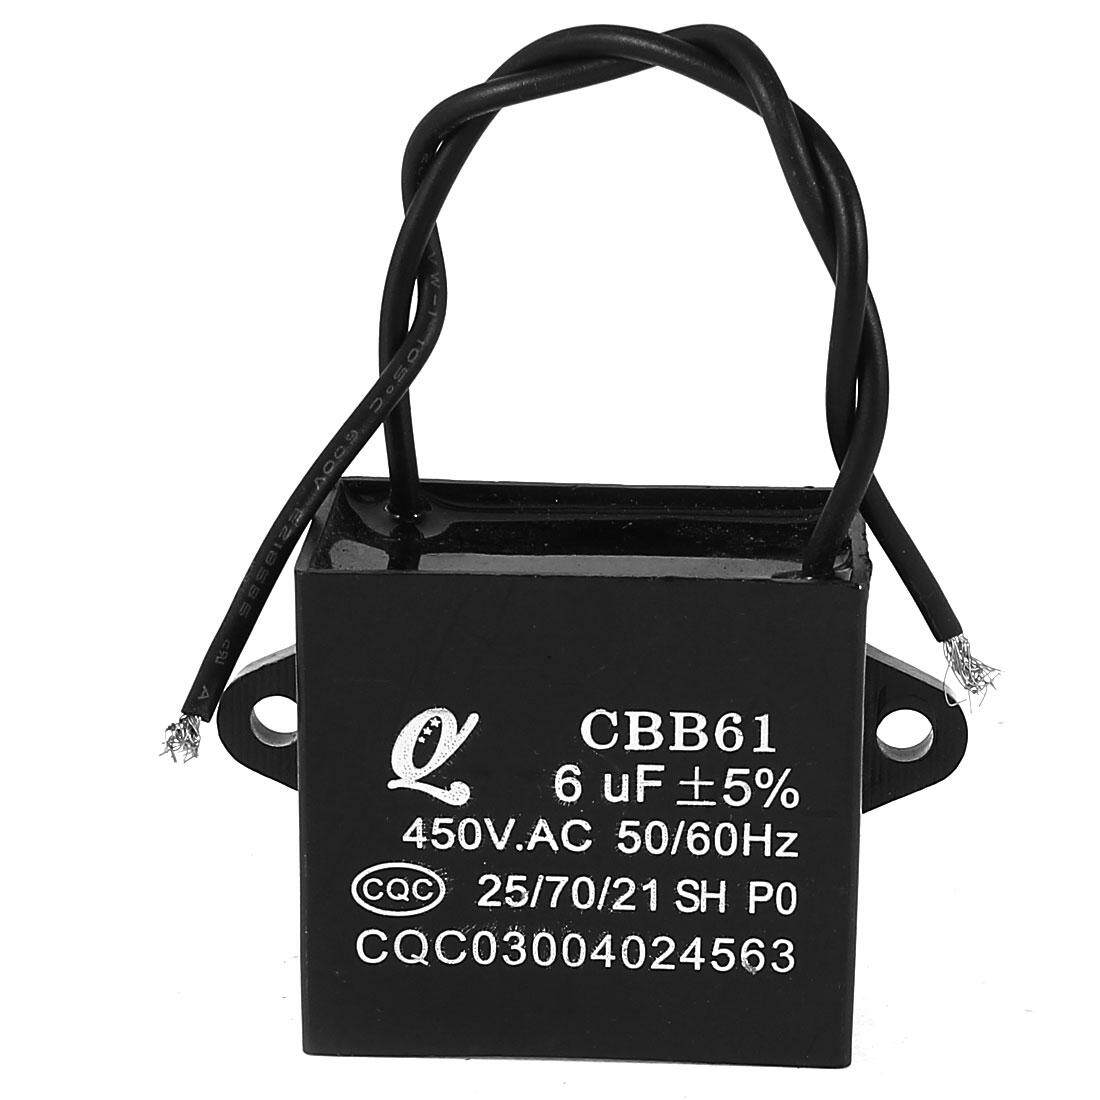 Buy Sell Cheapest Axa 450v Ac Best Quality Product Deals How To Wire 2wired Capacitor With Motor Of A Fan 6uf 2 Wired Metalized Polypropylene Film Black